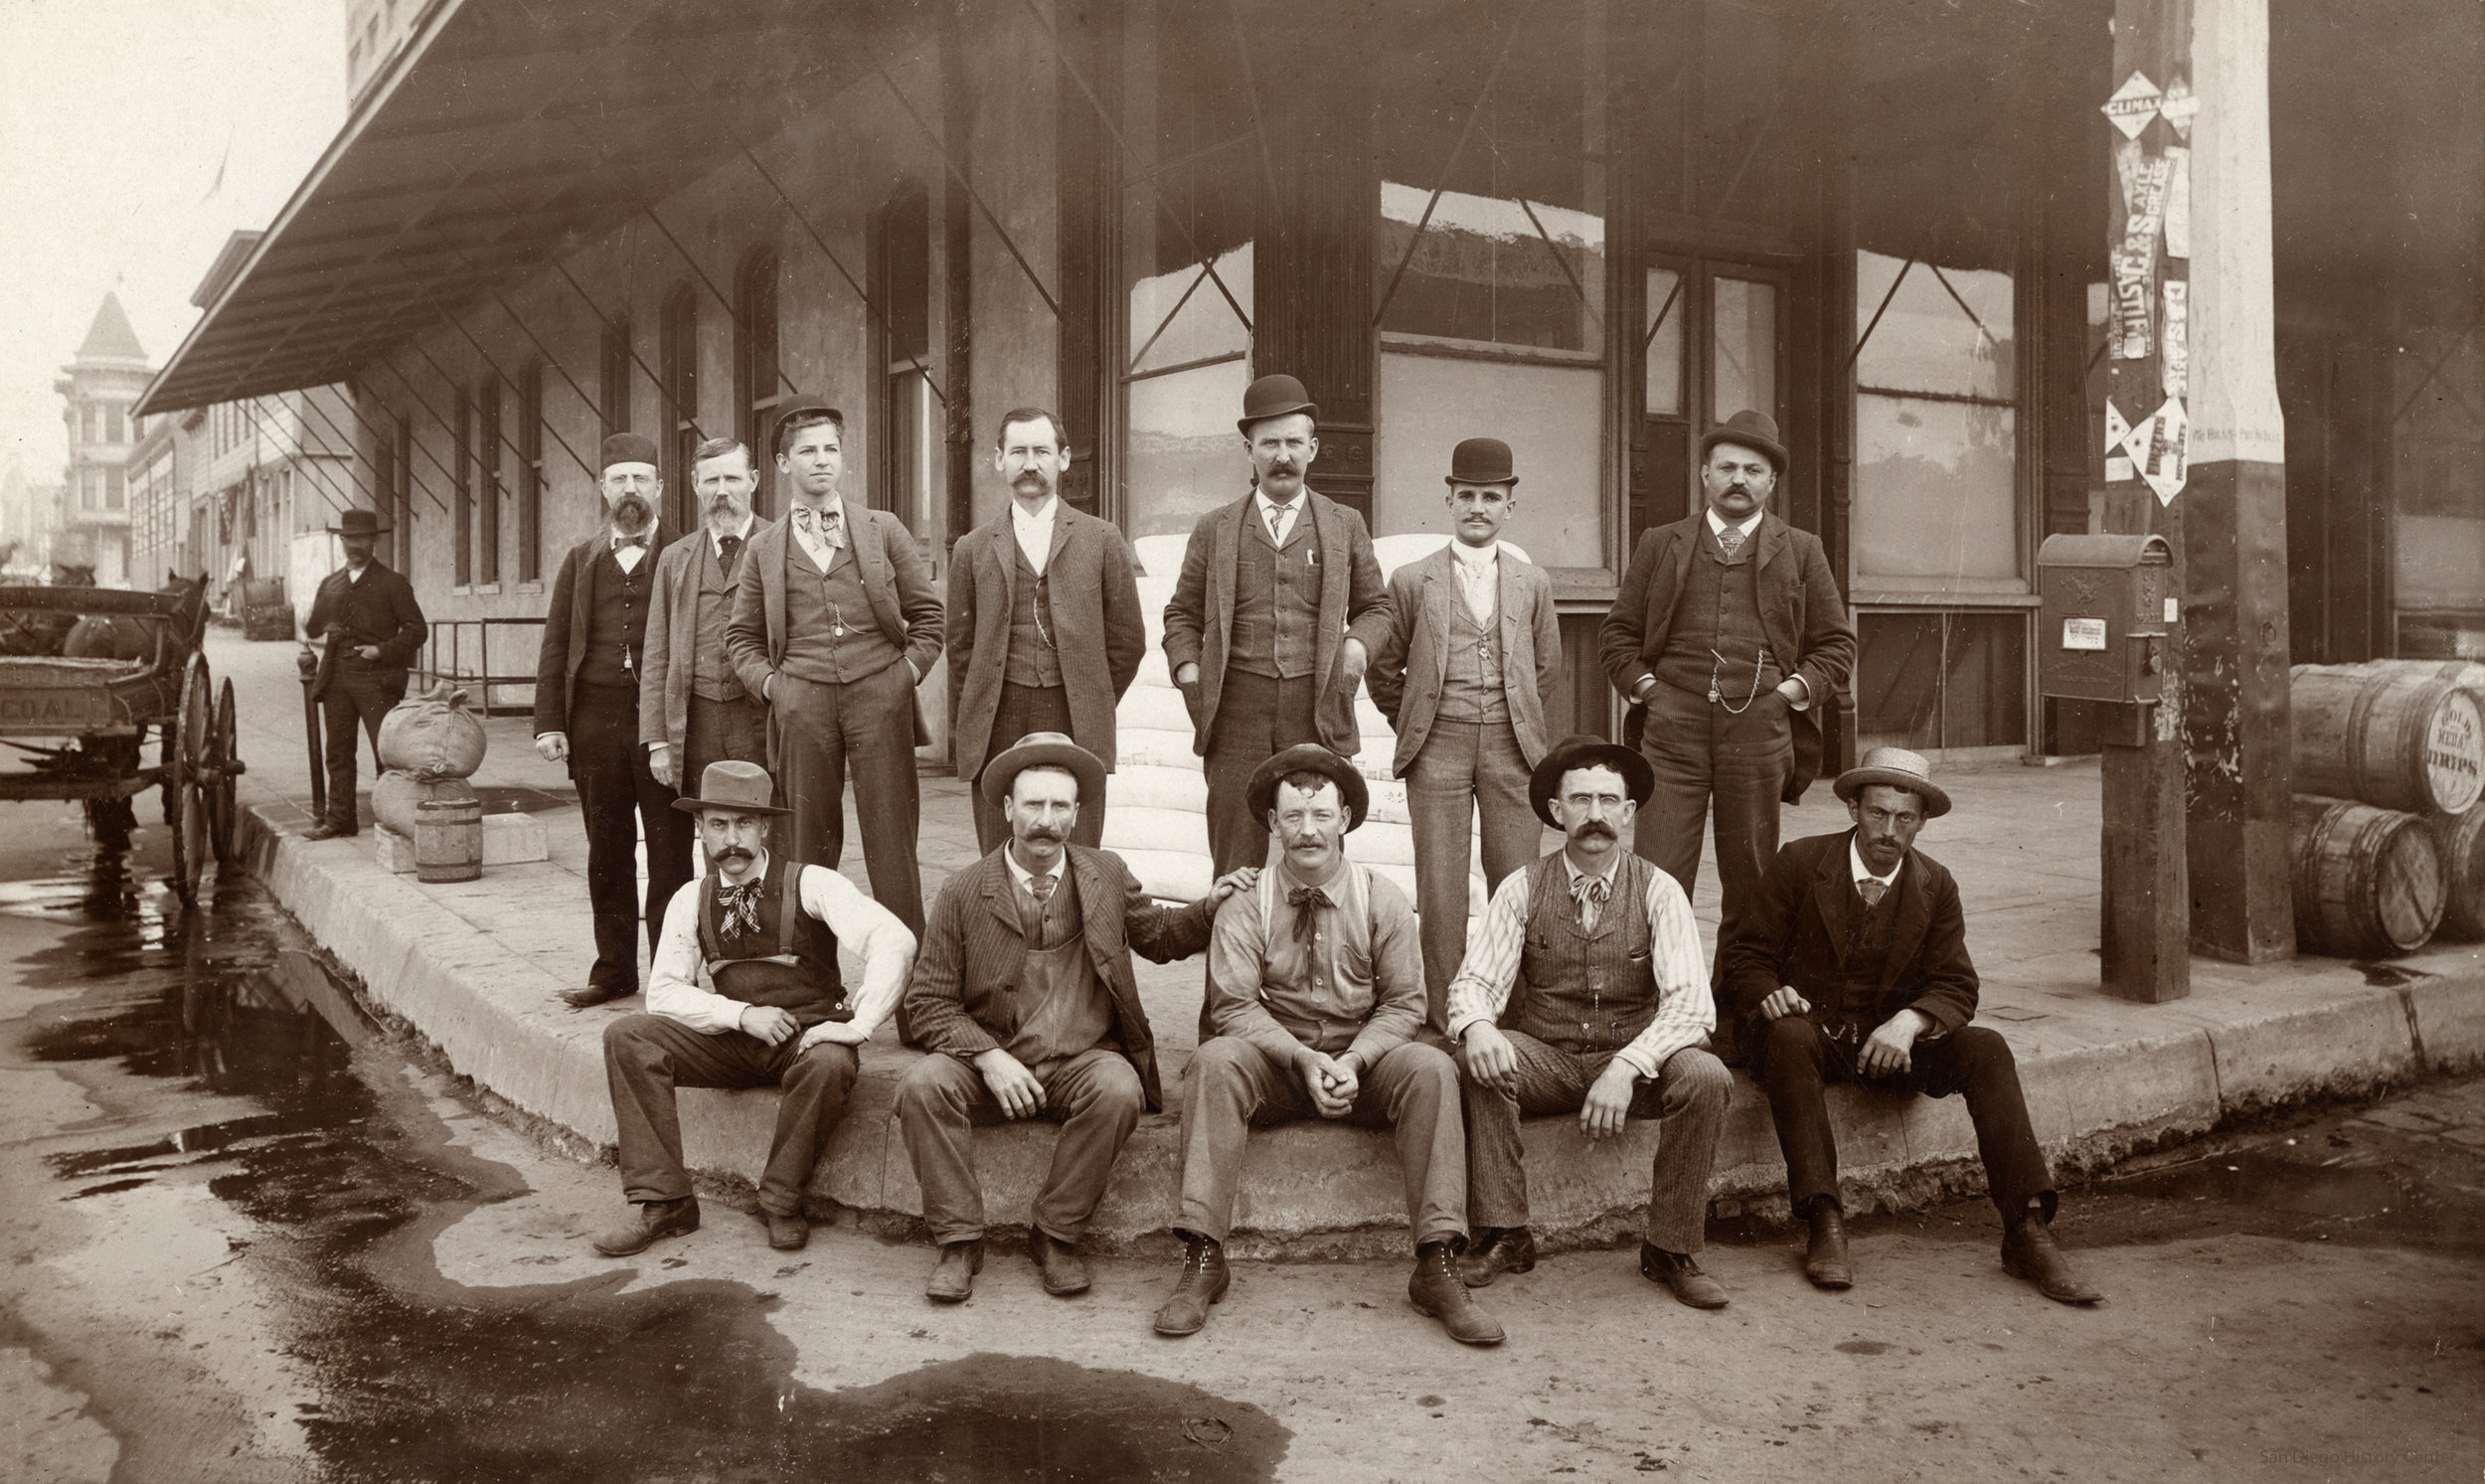 OP 1219 Klauber and Levi - employees - c. 1890 ©SDHC.jpg